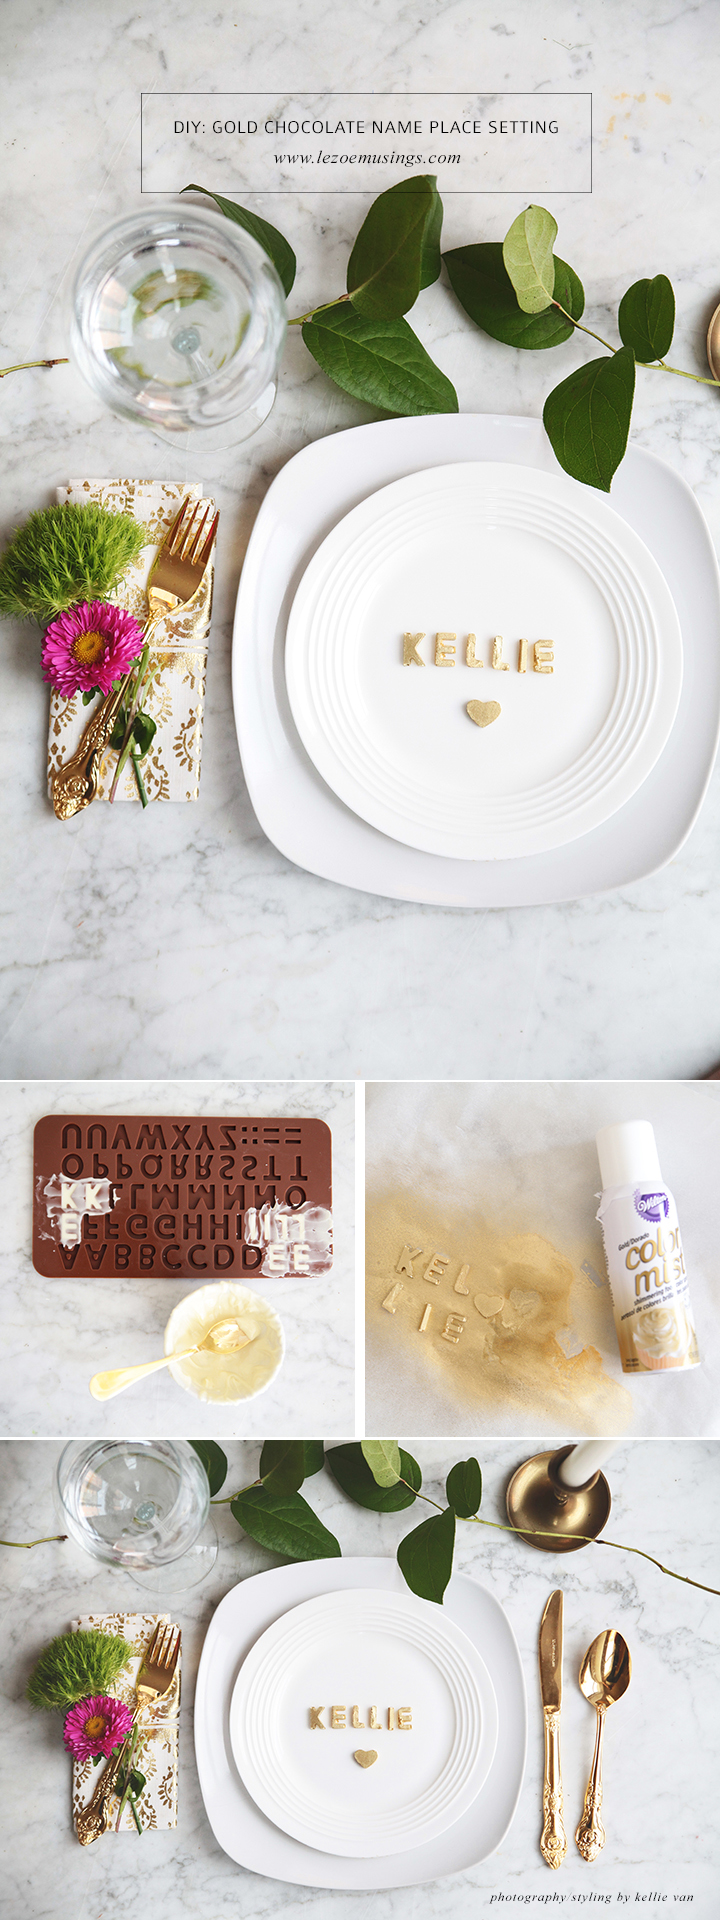 GOLD CHOCOLATE NAME PLACE SETTING_LE ZOE MUSINGS